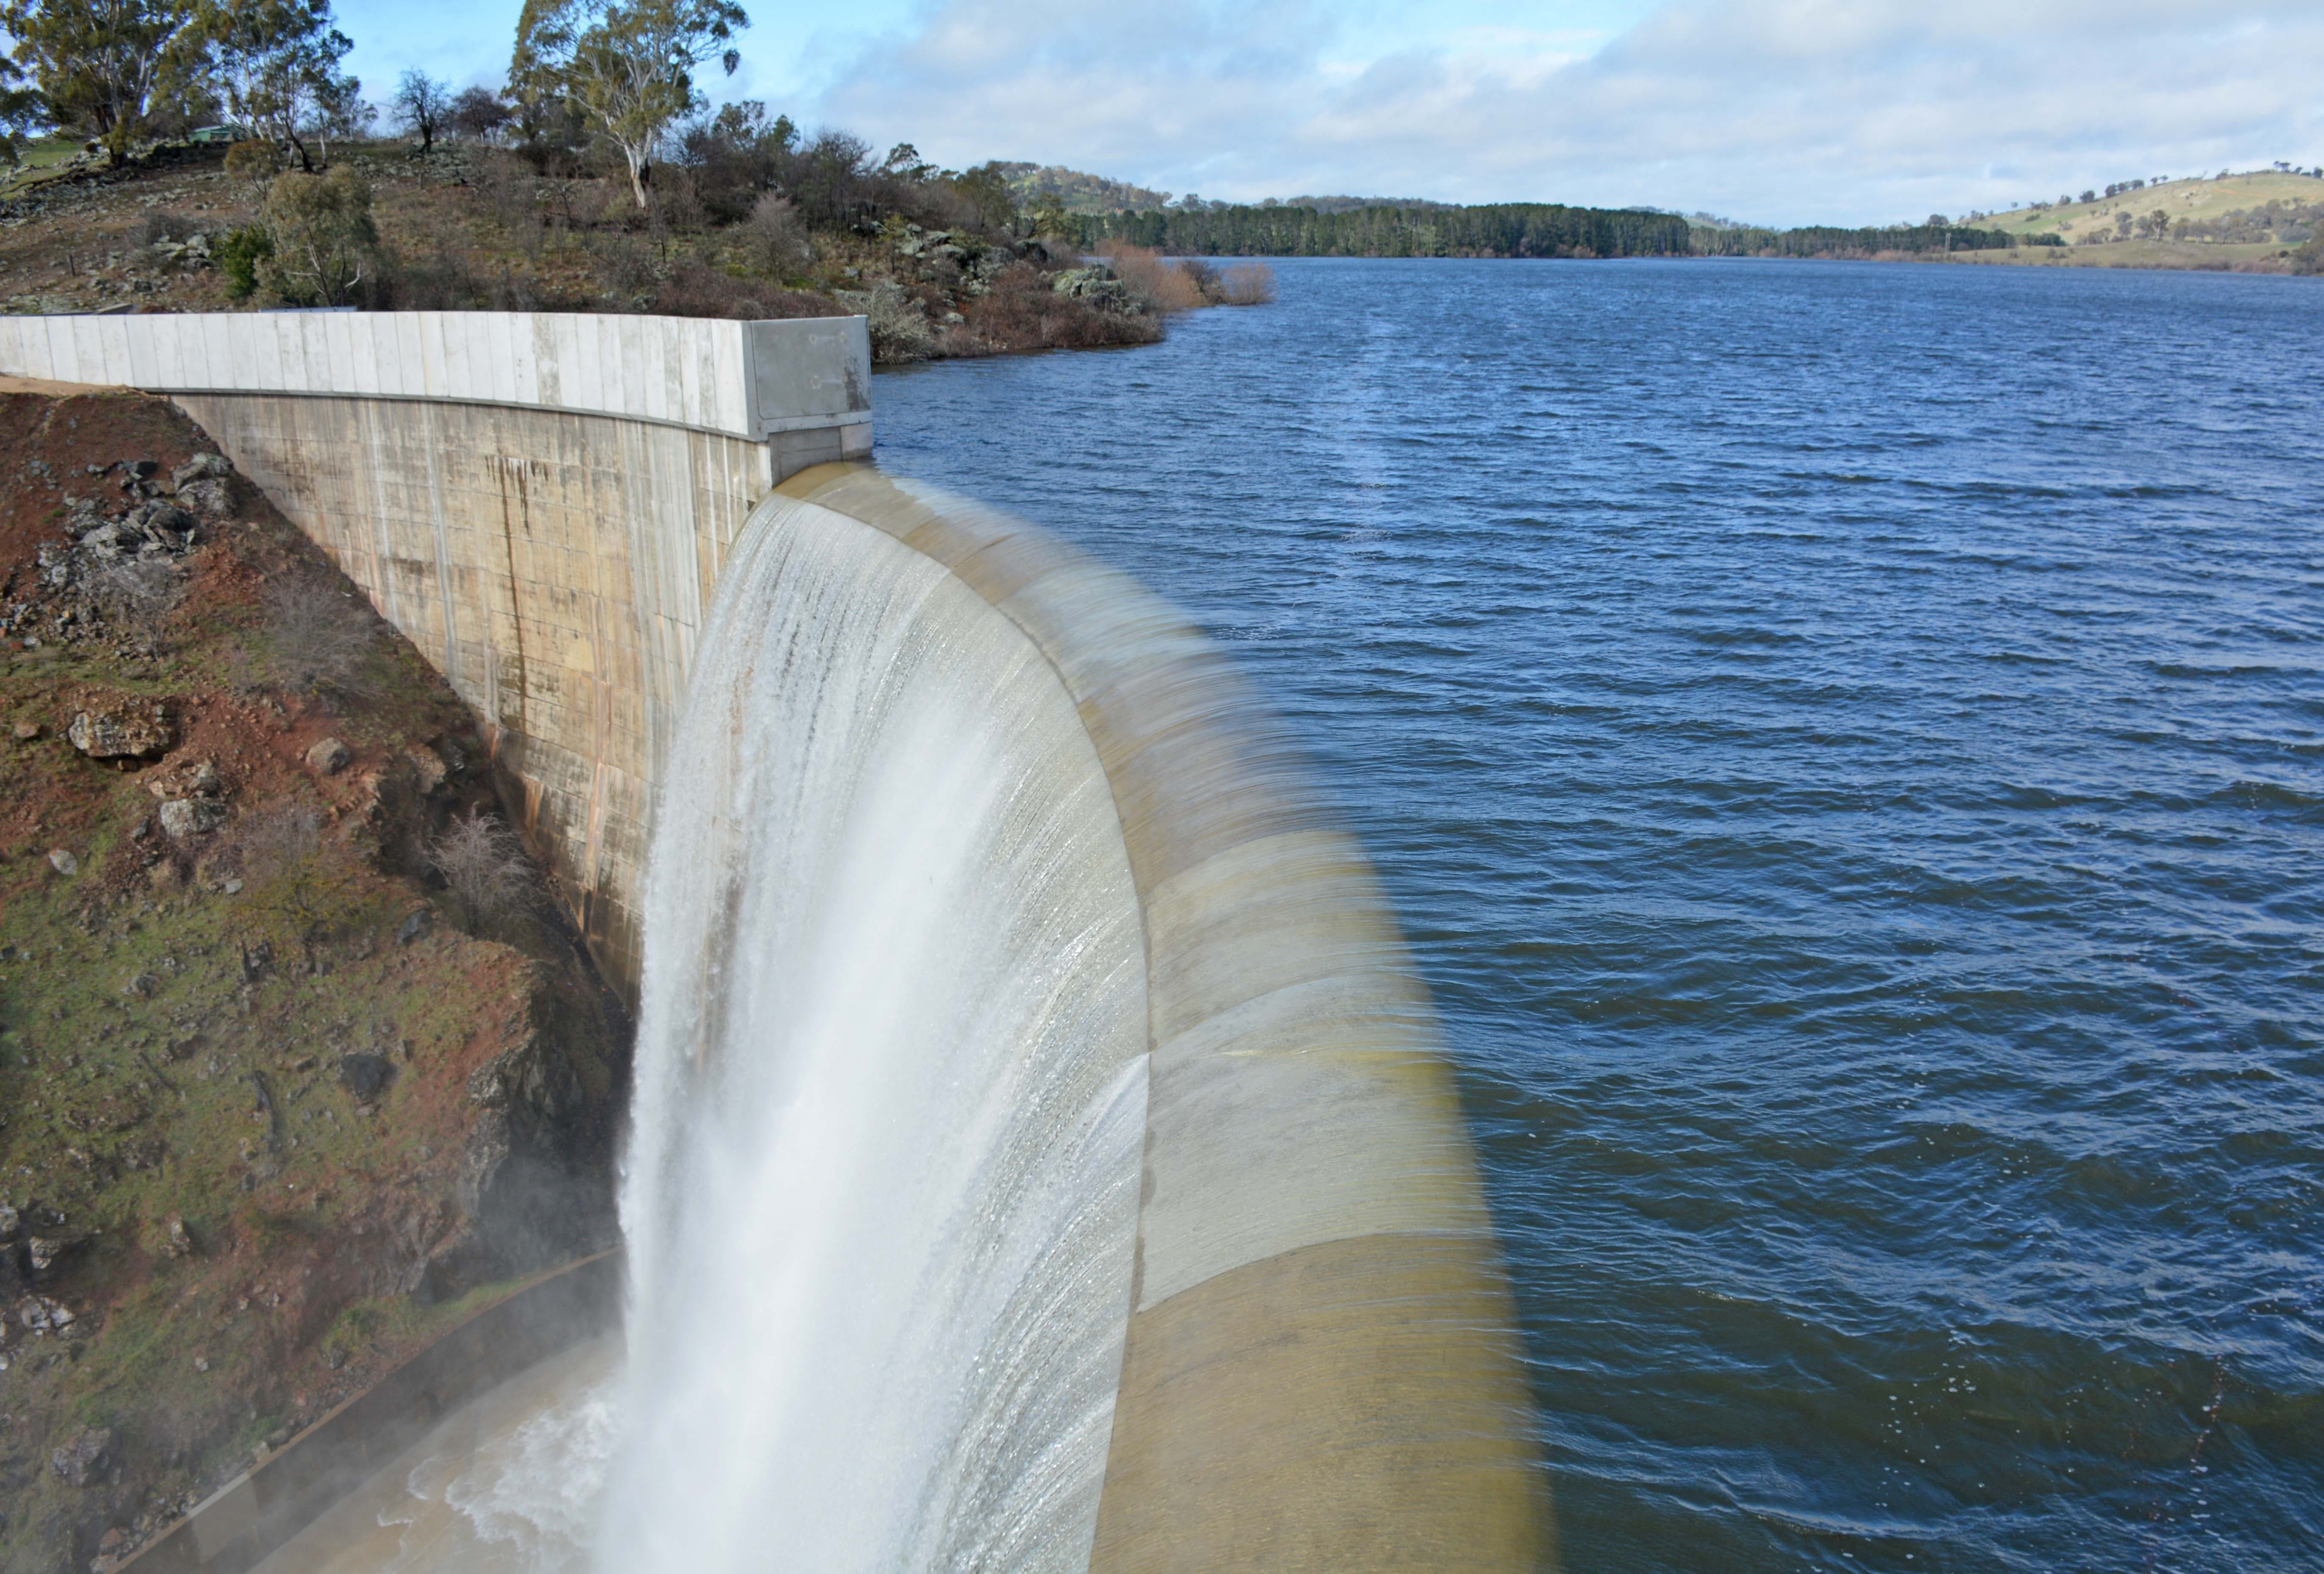 Water flows over the new higher dam wall at Suma Park